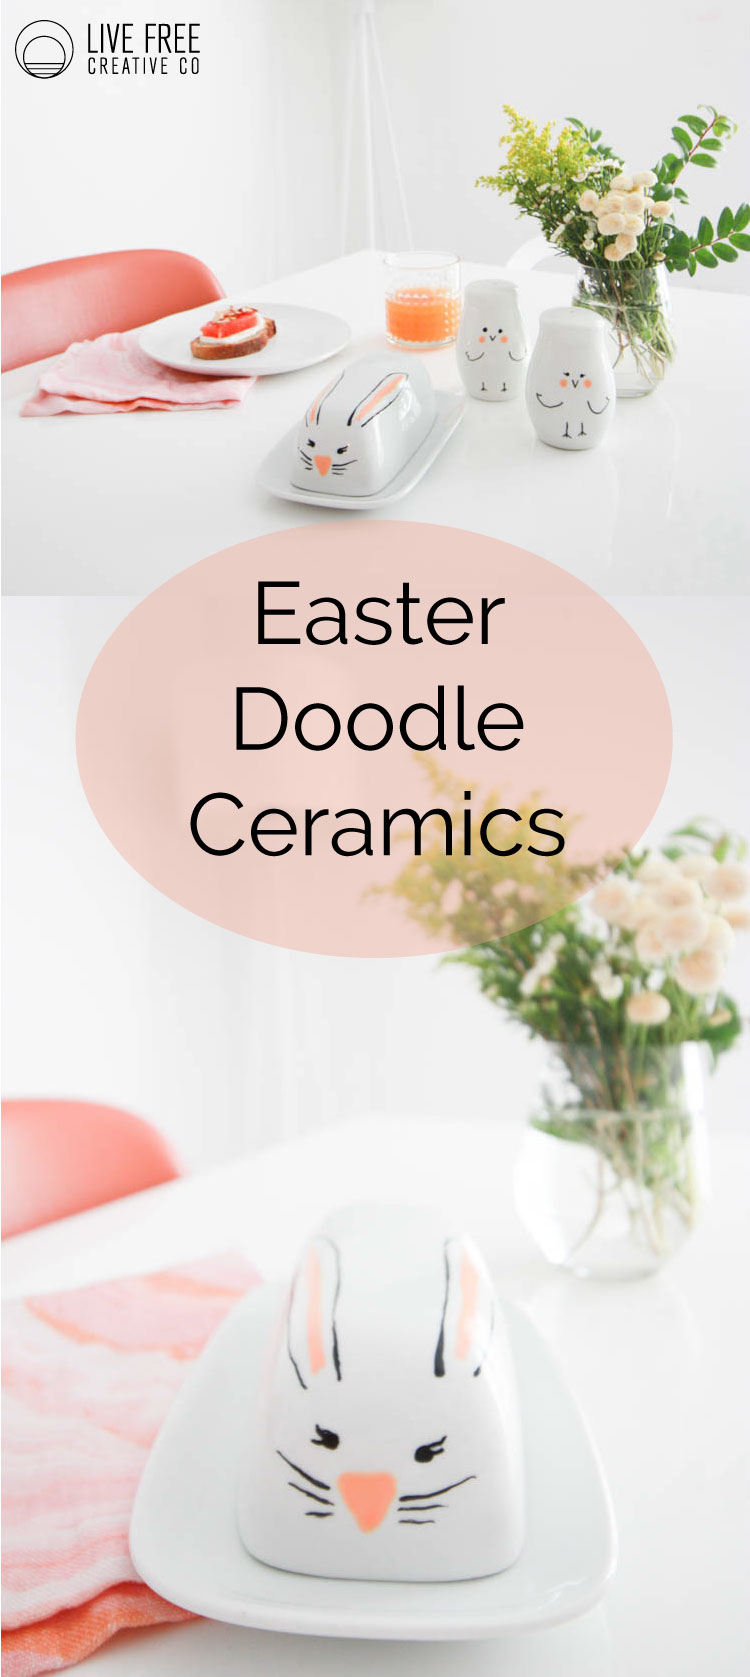 Easter Doodle Ceramics | Live Free Creative Co